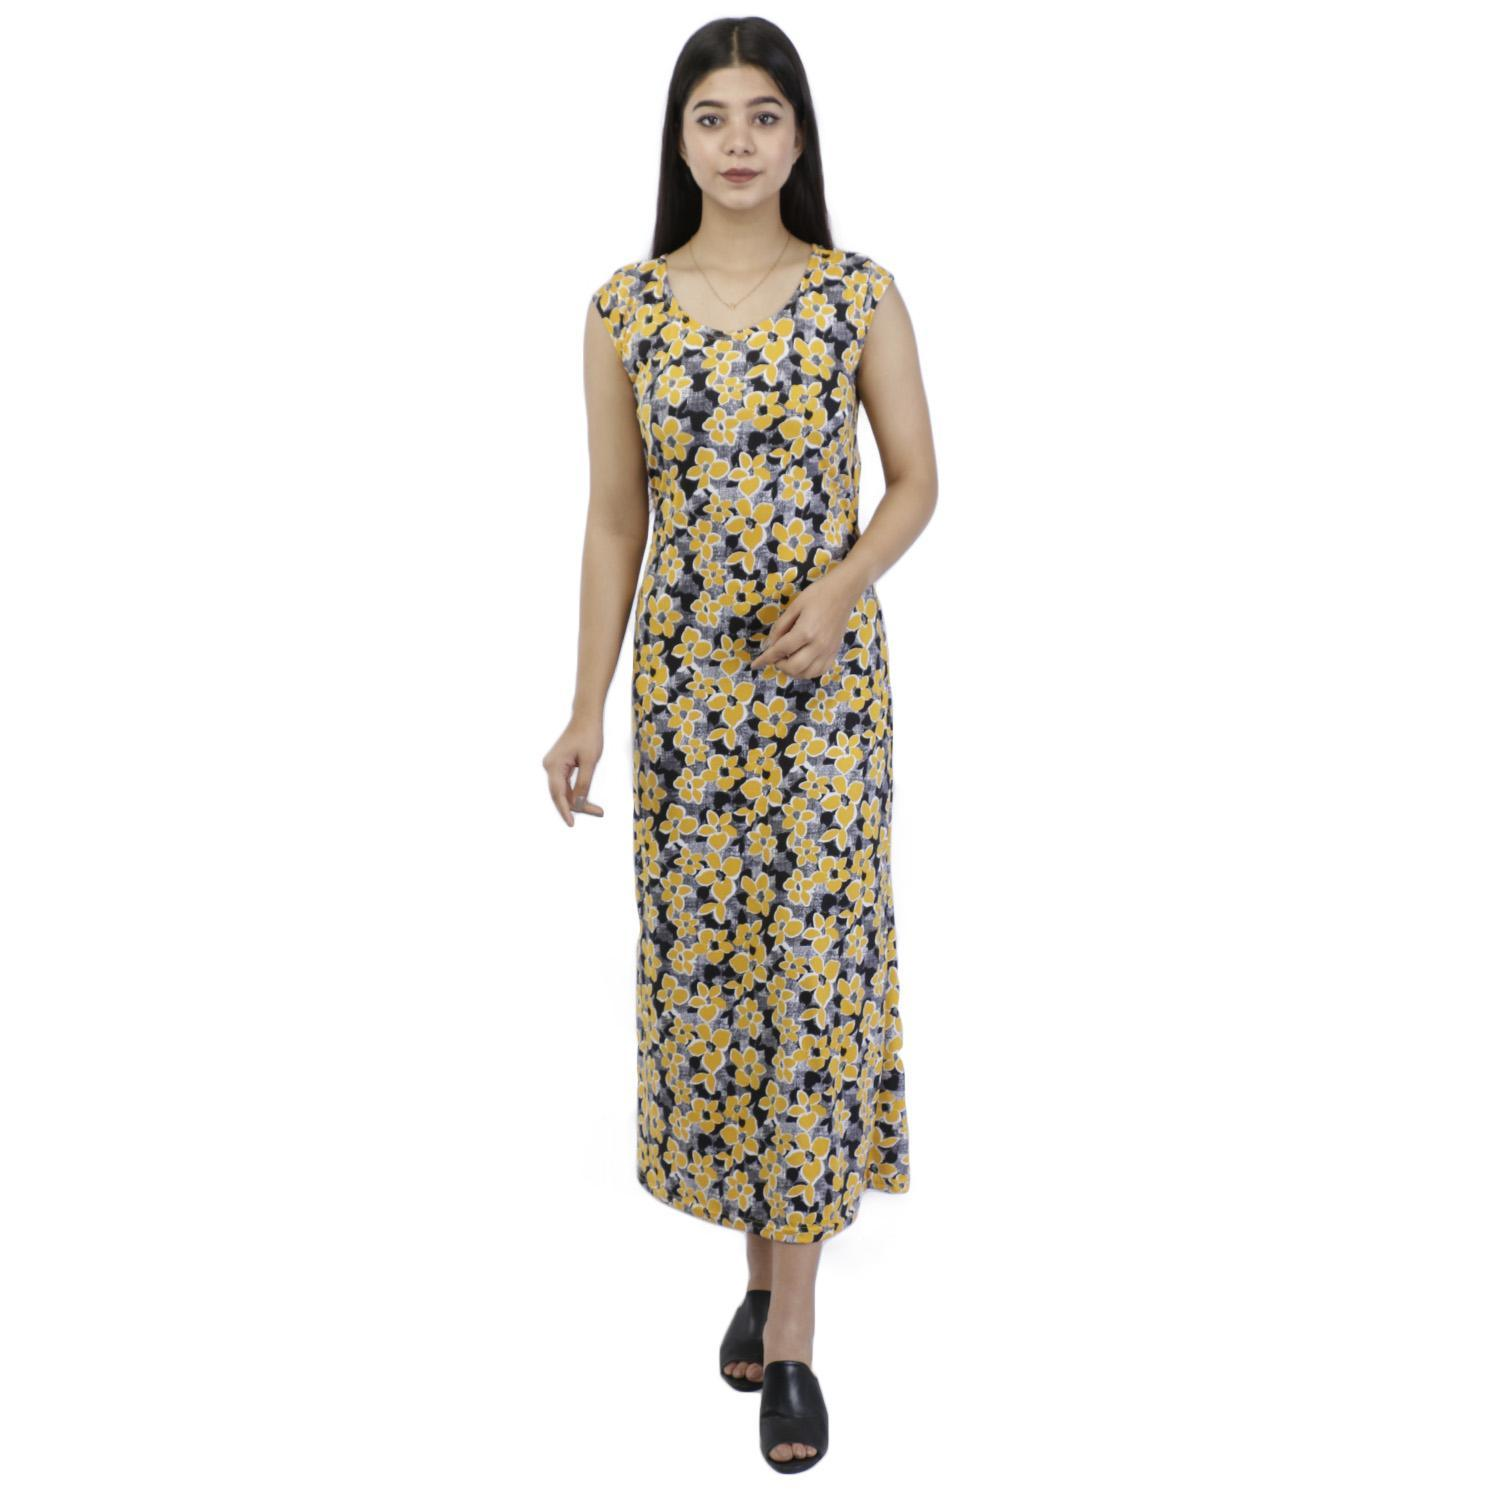 ecddf8254697c Buy Women's Maxi Dresses Online At Best Price From Daraz.com.np